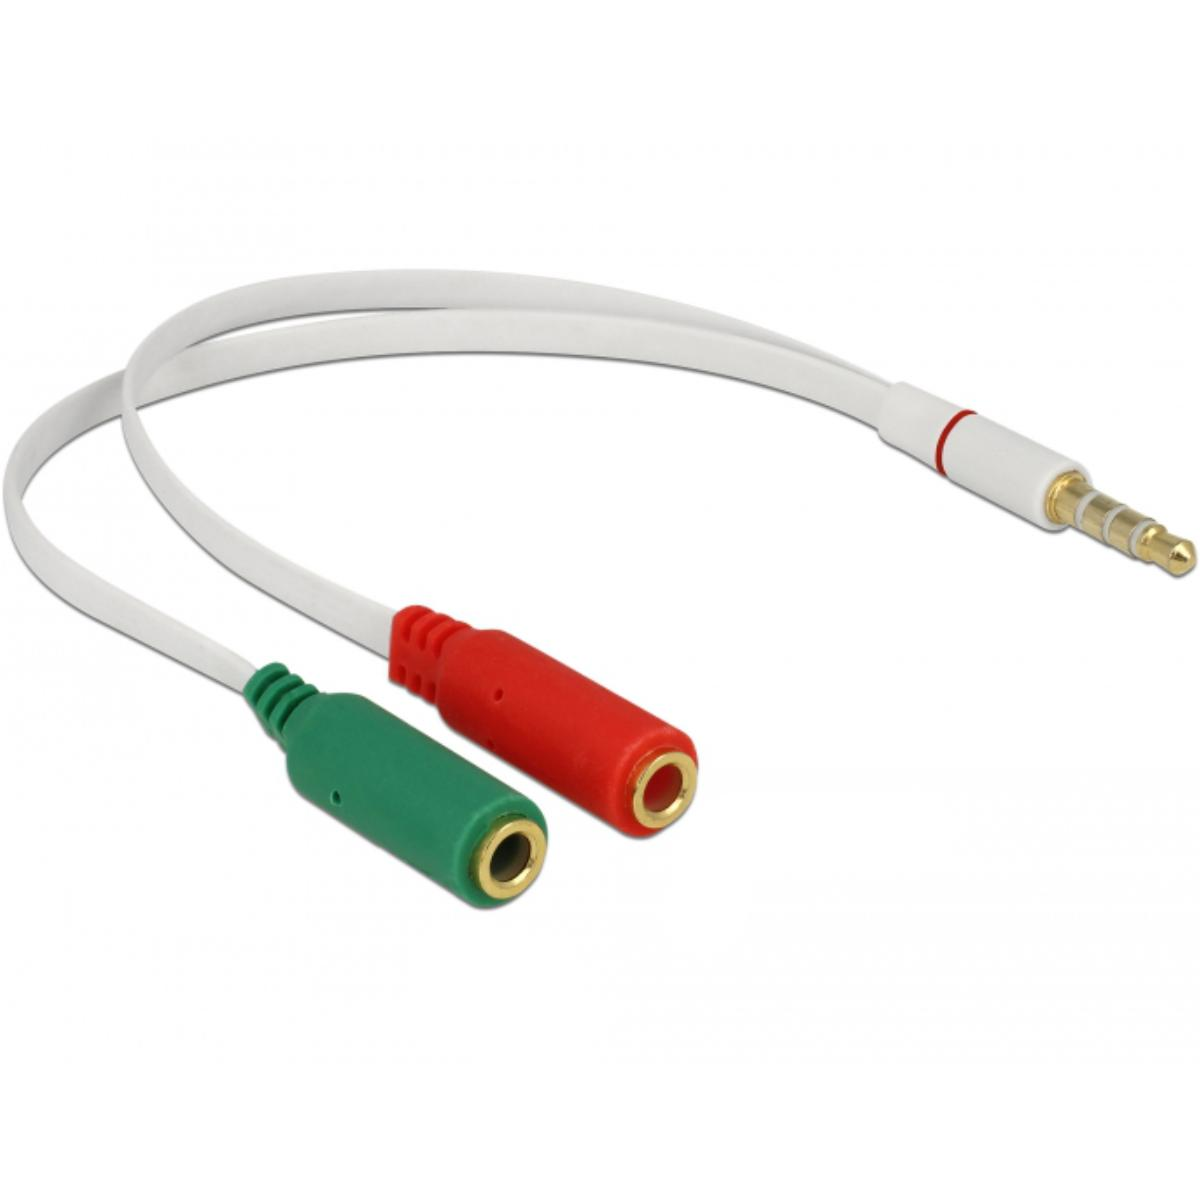 Jack splitter kabel - Microfoon en audio o.a. geschikt voor Apple Iphone/iPad, Playstation 4 en Xbox One